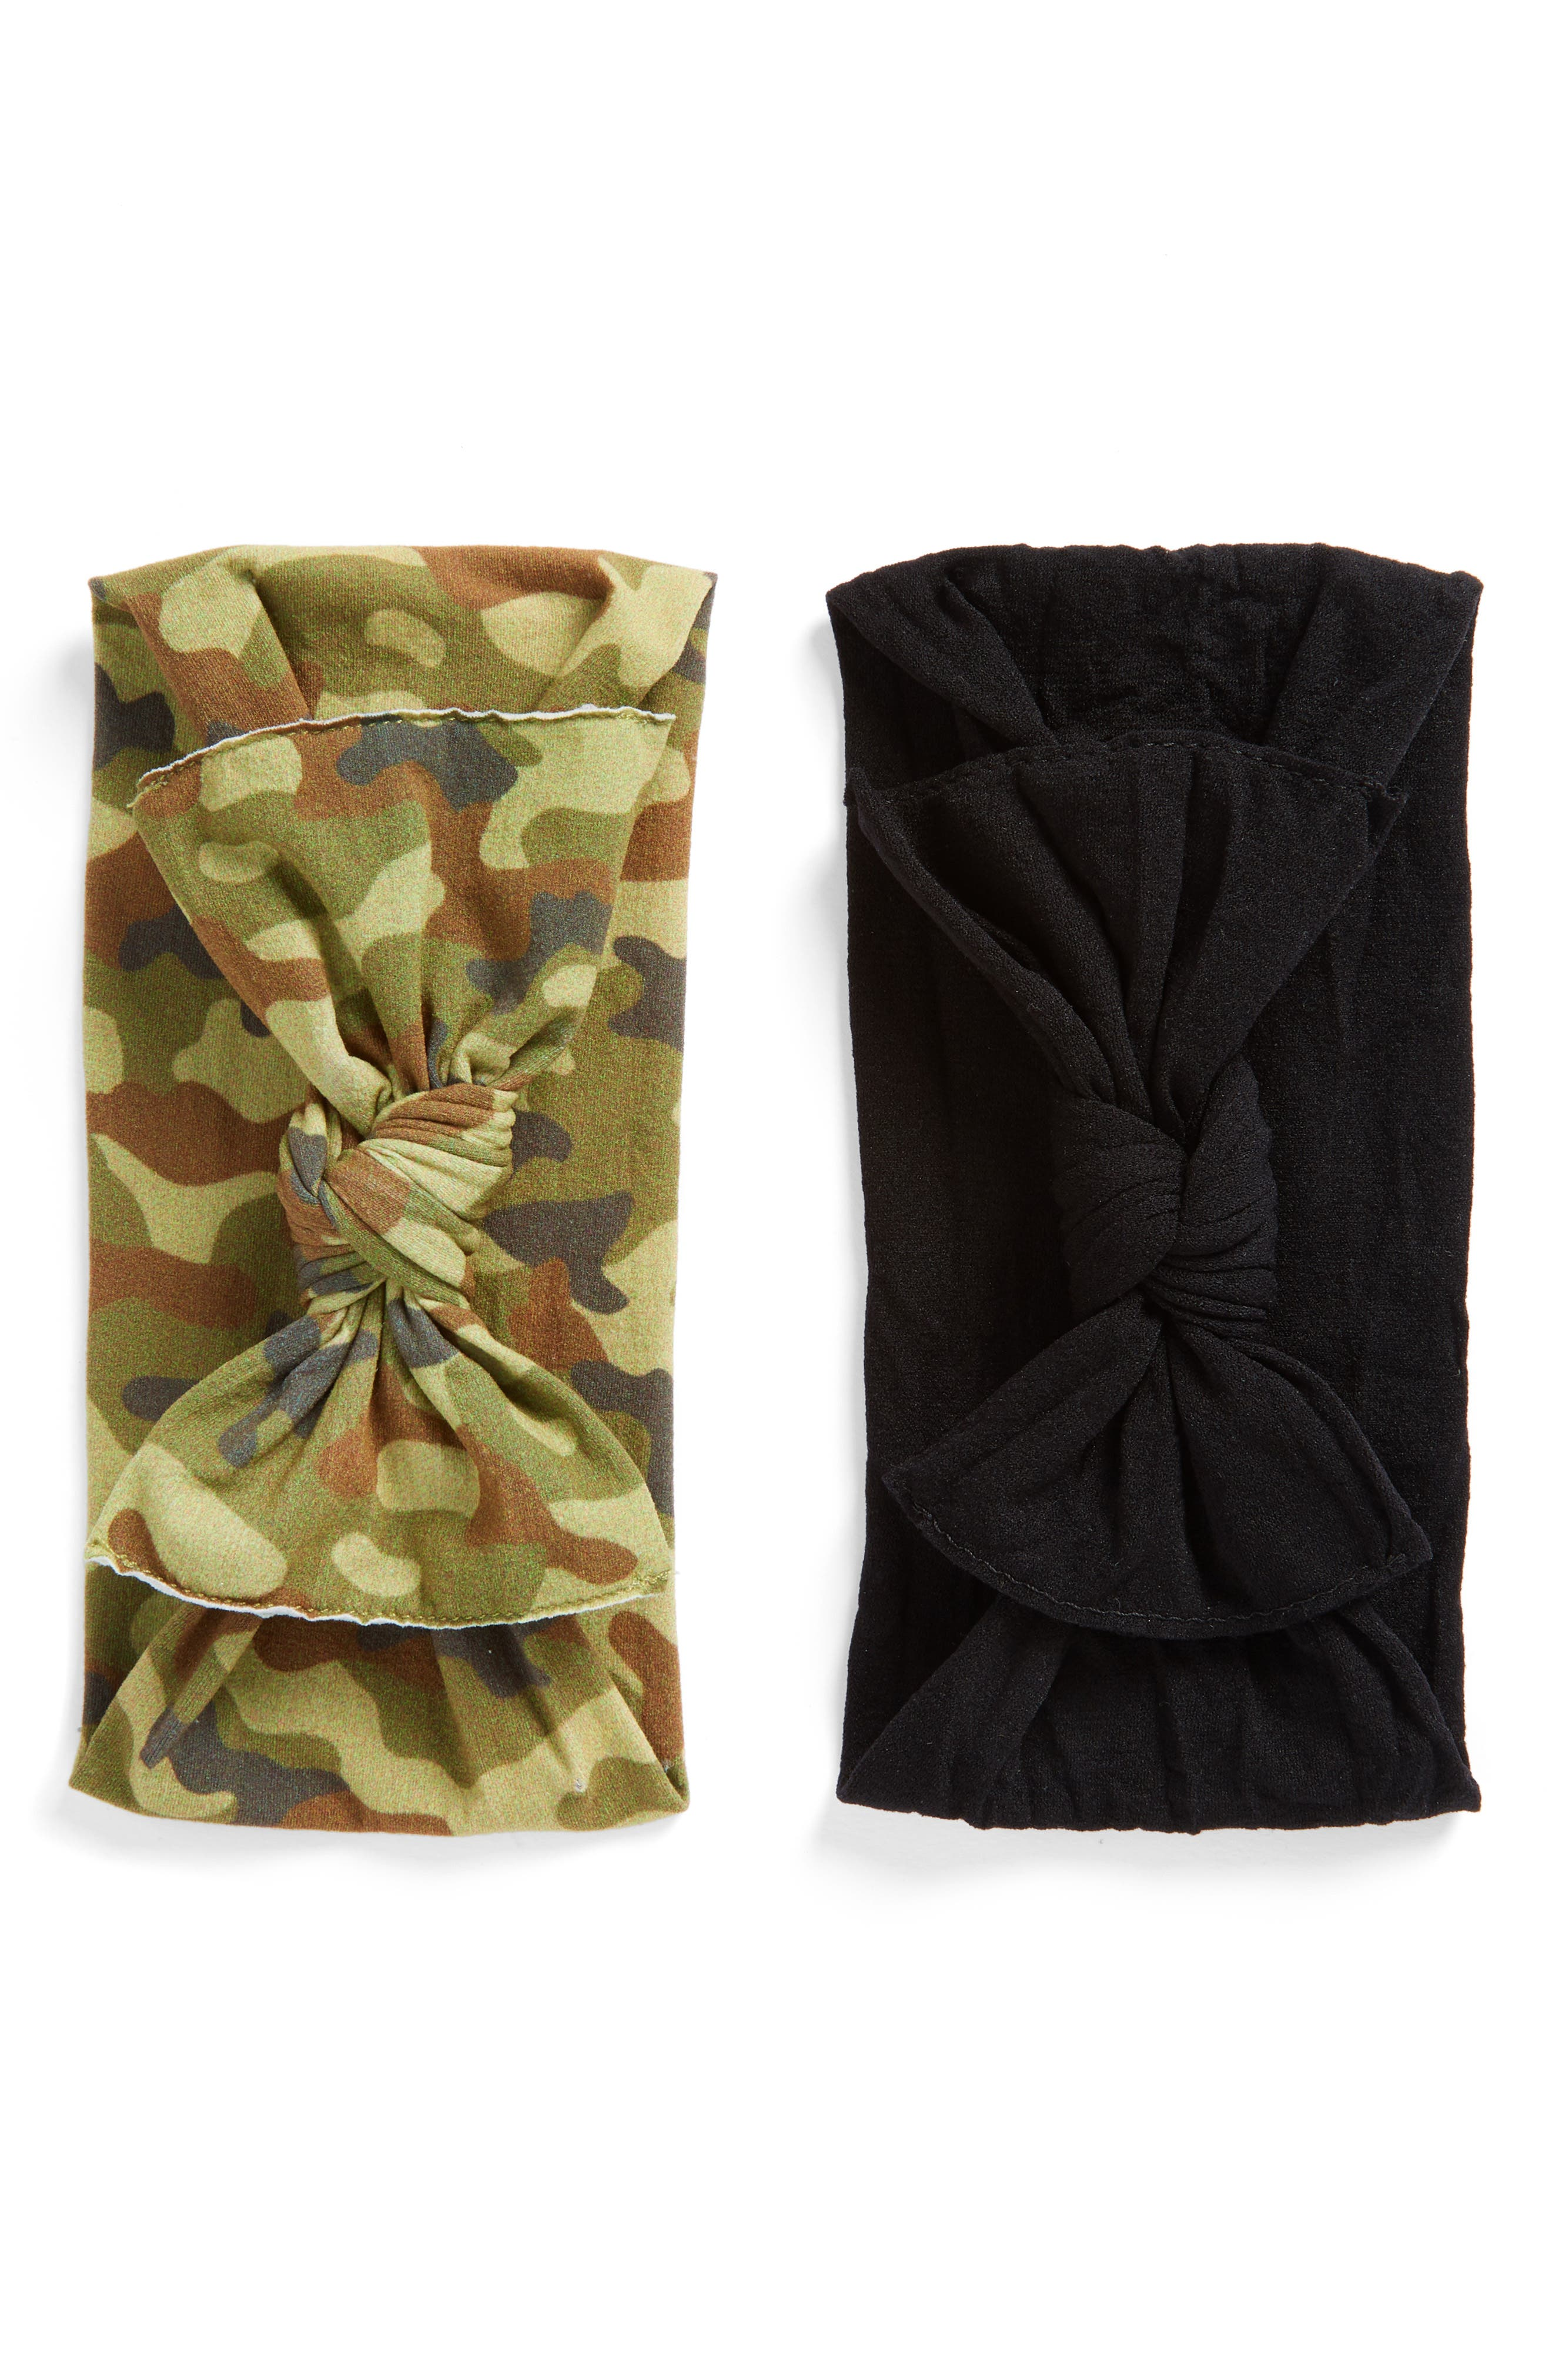 BABY BLING,                             2-Pack Knotted Headbands,                             Main thumbnail 1, color,                             NEW CAMO/ BLACK